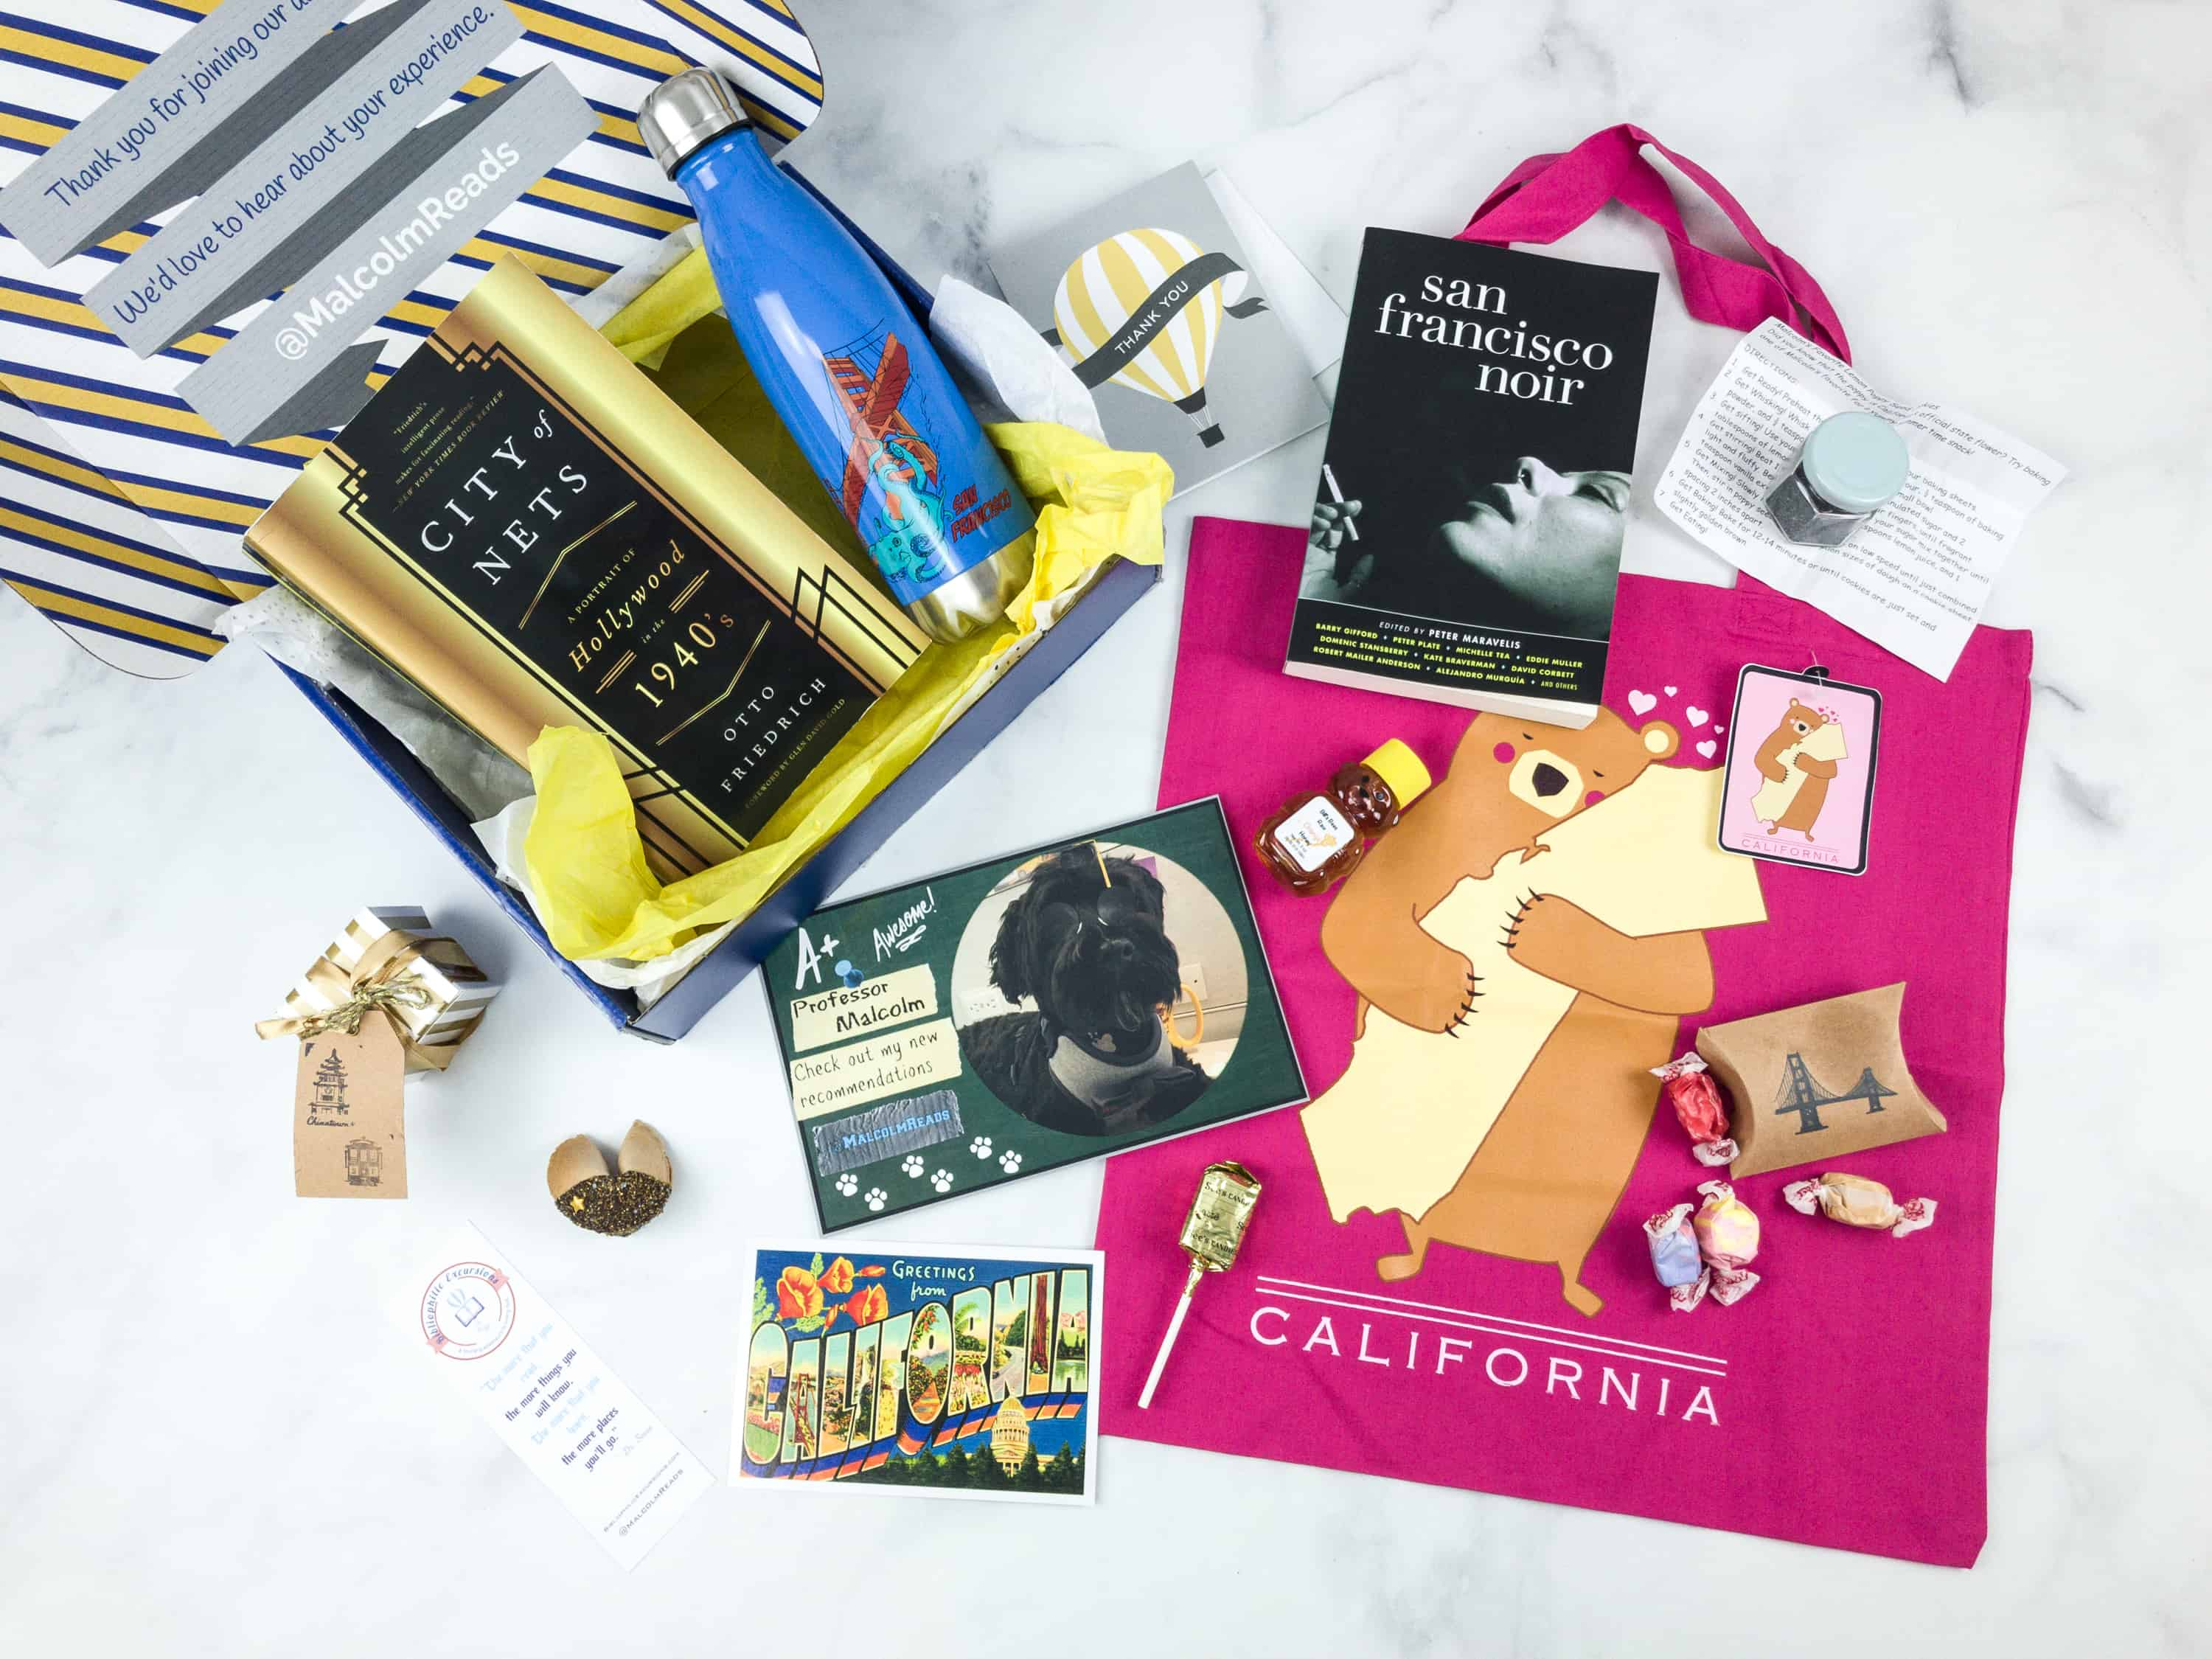 Bibliophilic Excursions Signature Journey July 2018 Subscription Box Review